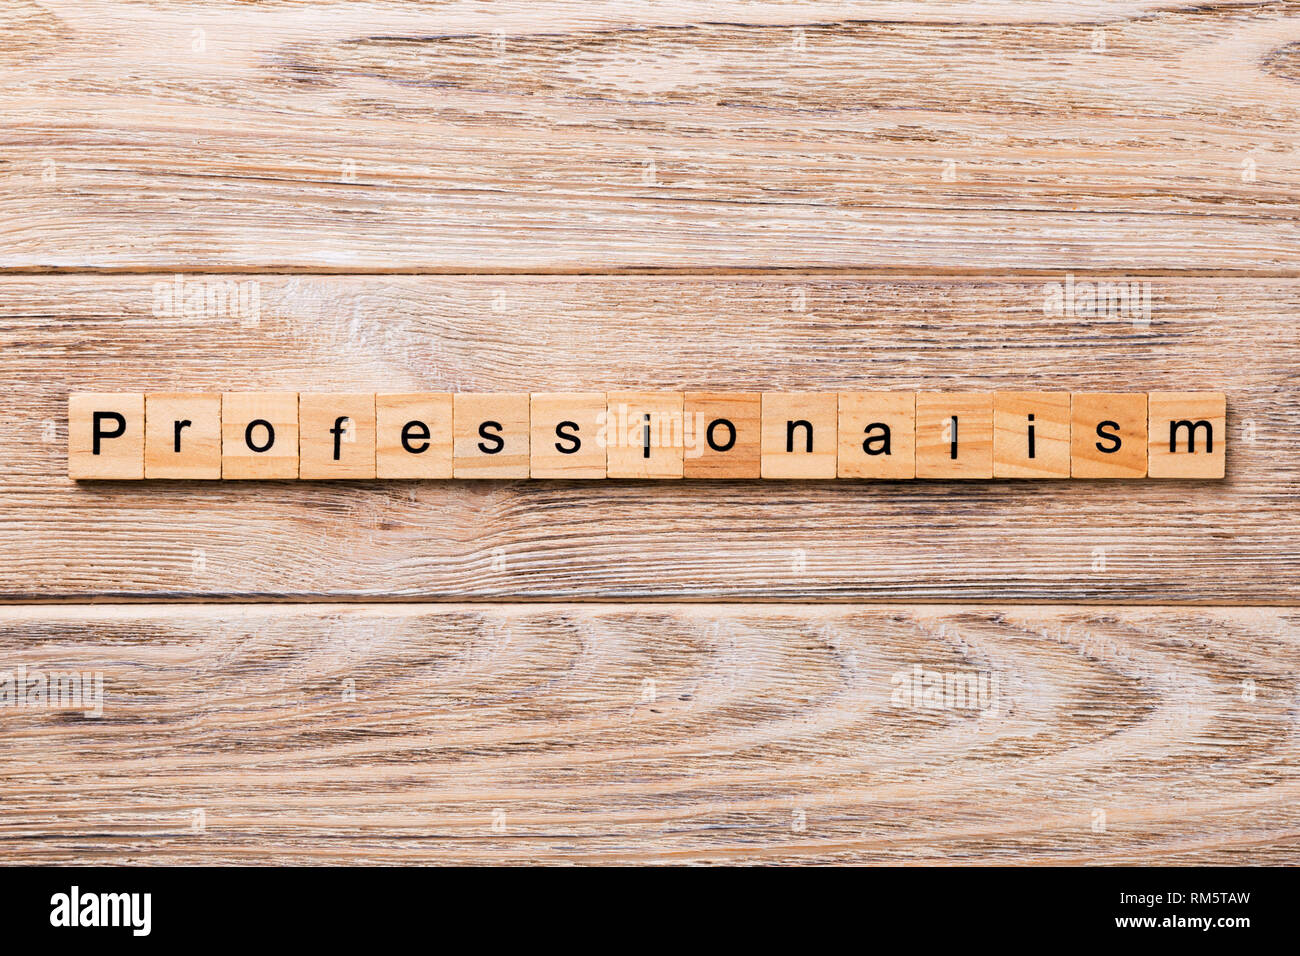 Professionalism word written on wood block. Professionalism text on wooden table for your desing, concept. - Stock Image